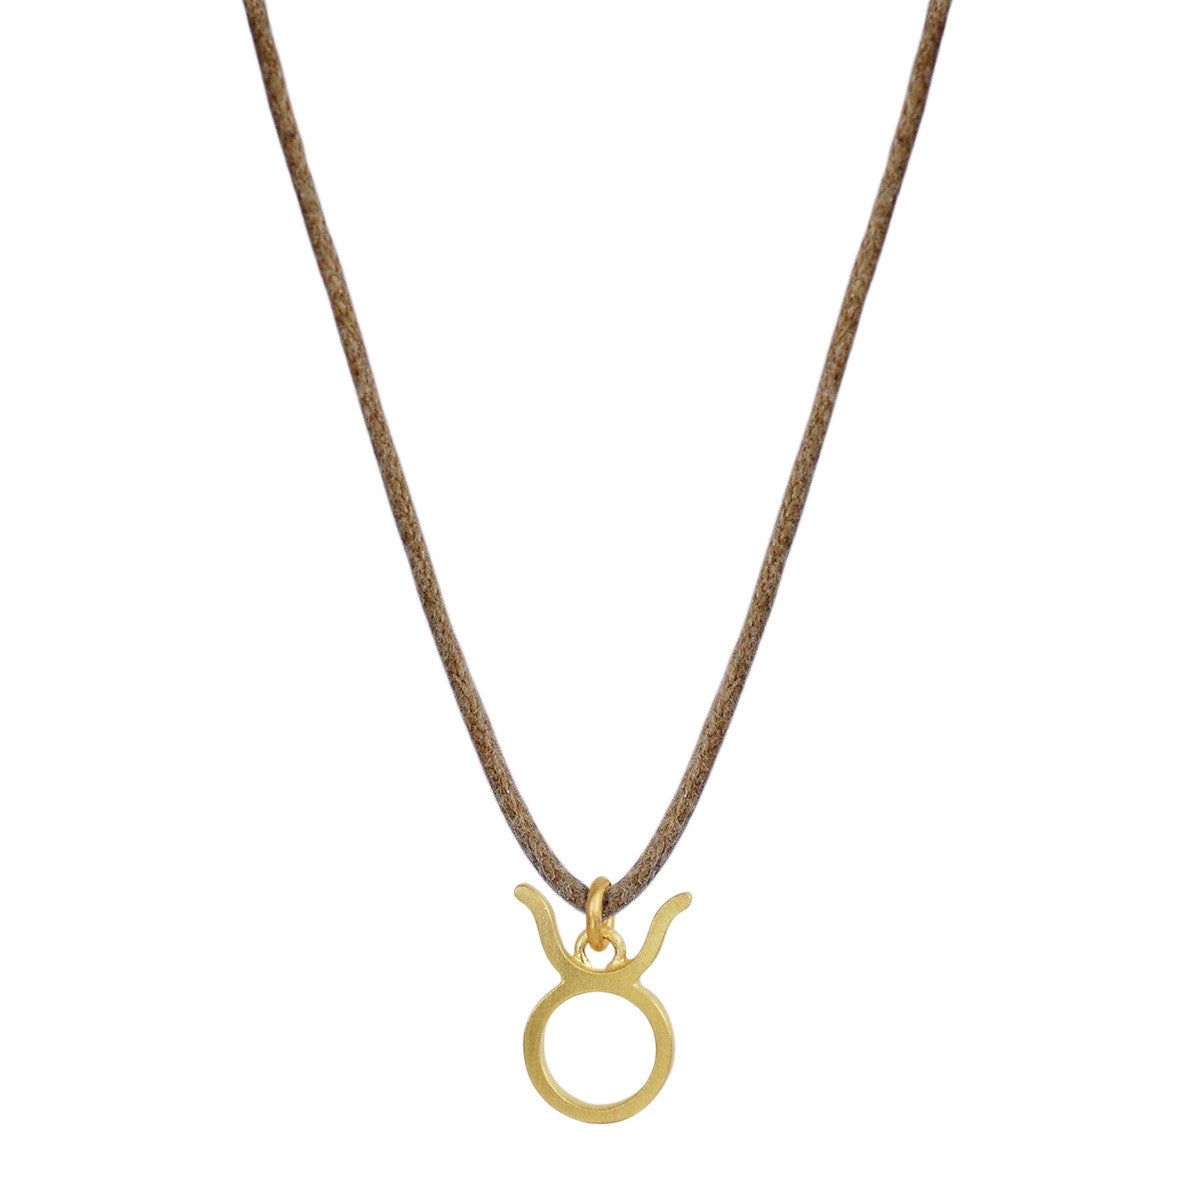 18K Gold Taurus Symbol Pendant on Cord